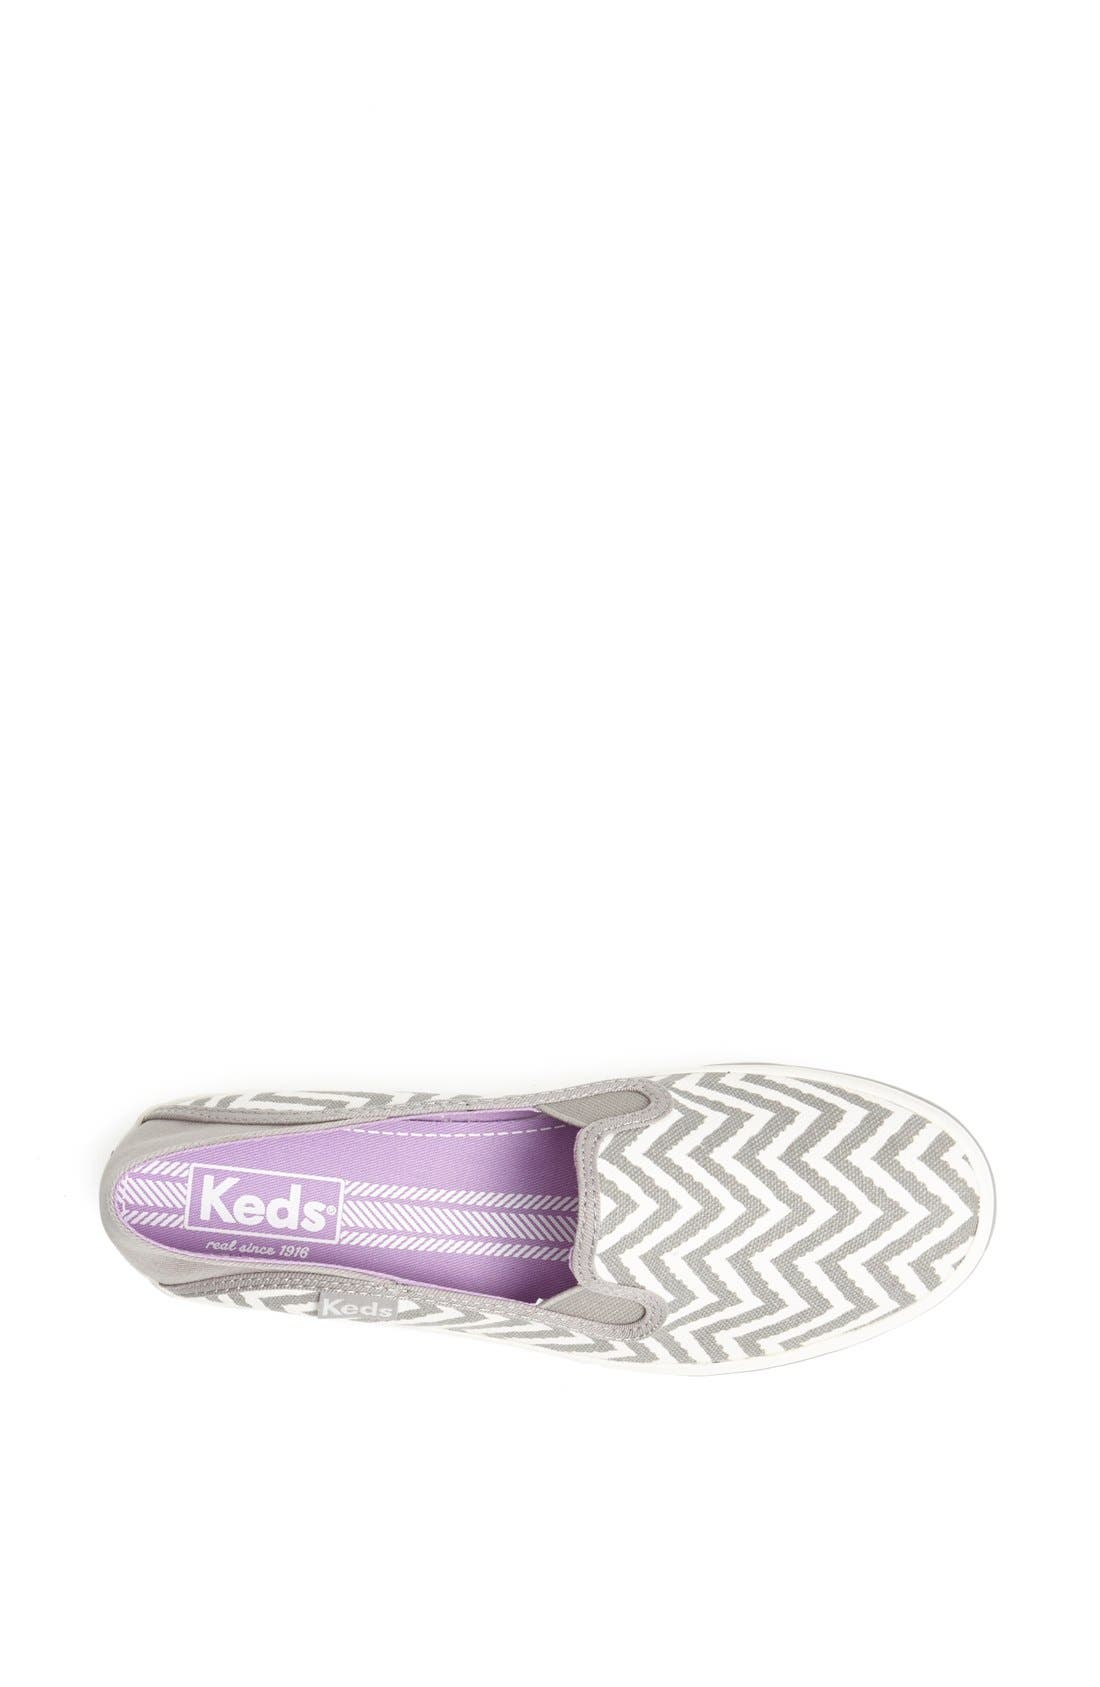 Alternate Image 3  - Keds® 'Crash Back - Zigzag' Canvas Slip-On Sneaker (Women)